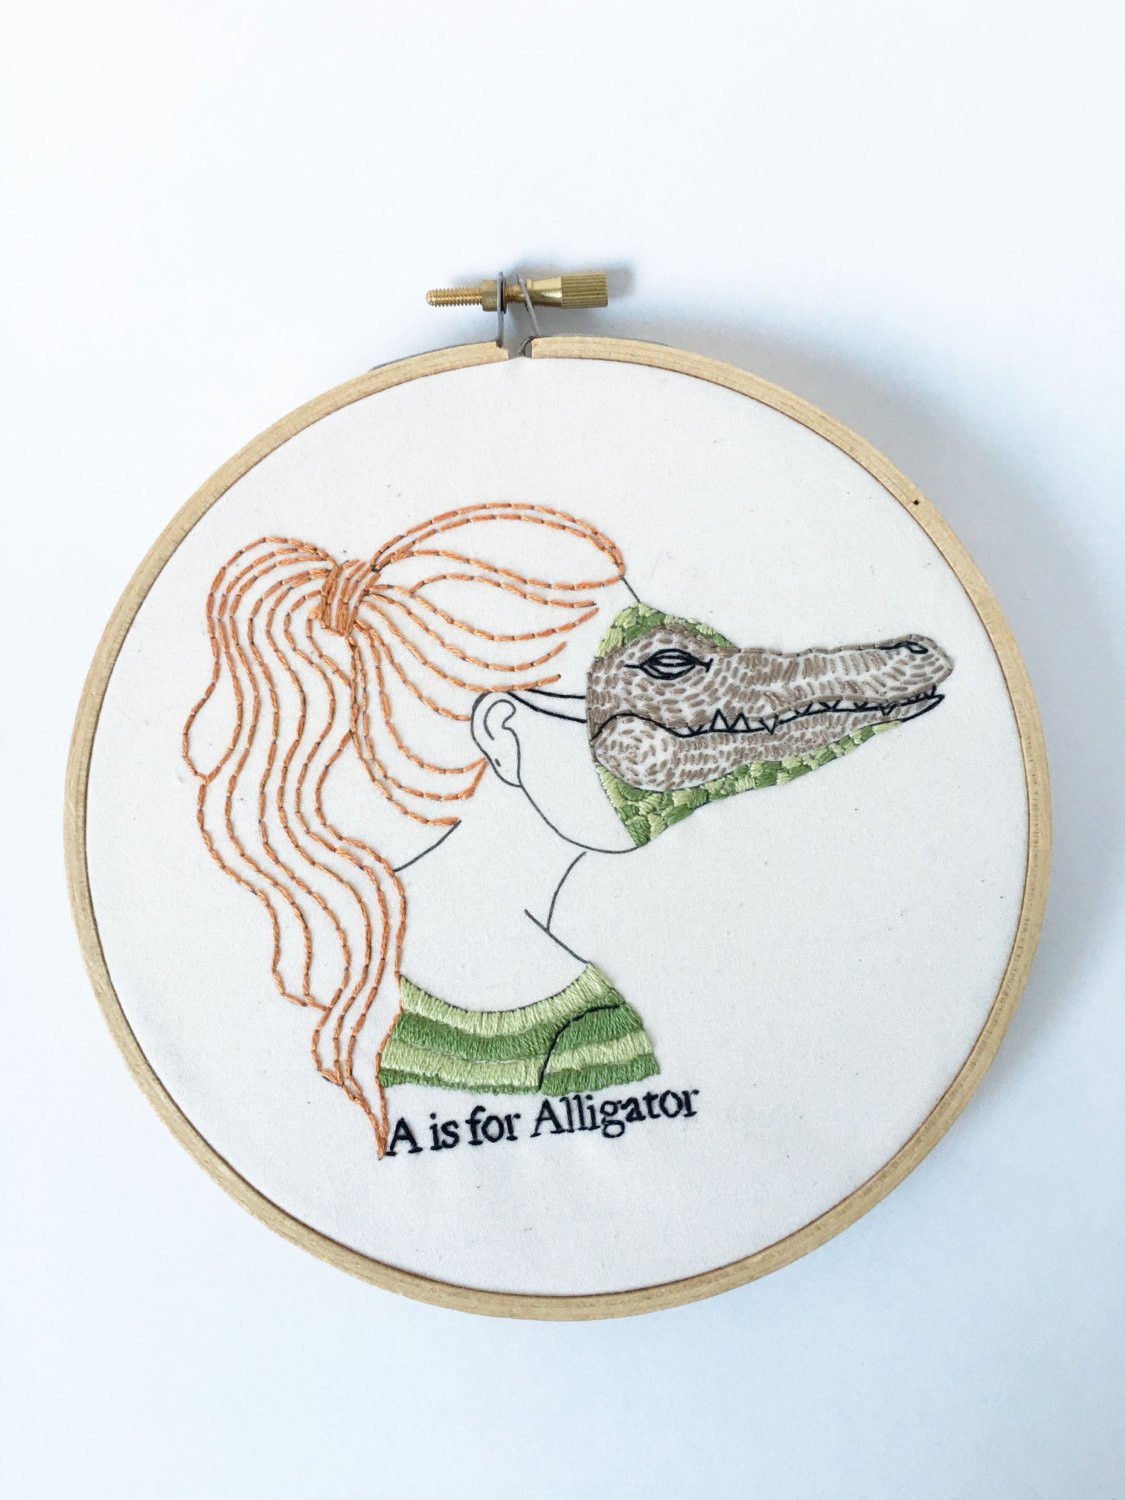 Embroidery Kit Hand Embroidery Kit DIY Embroidery Kit A is